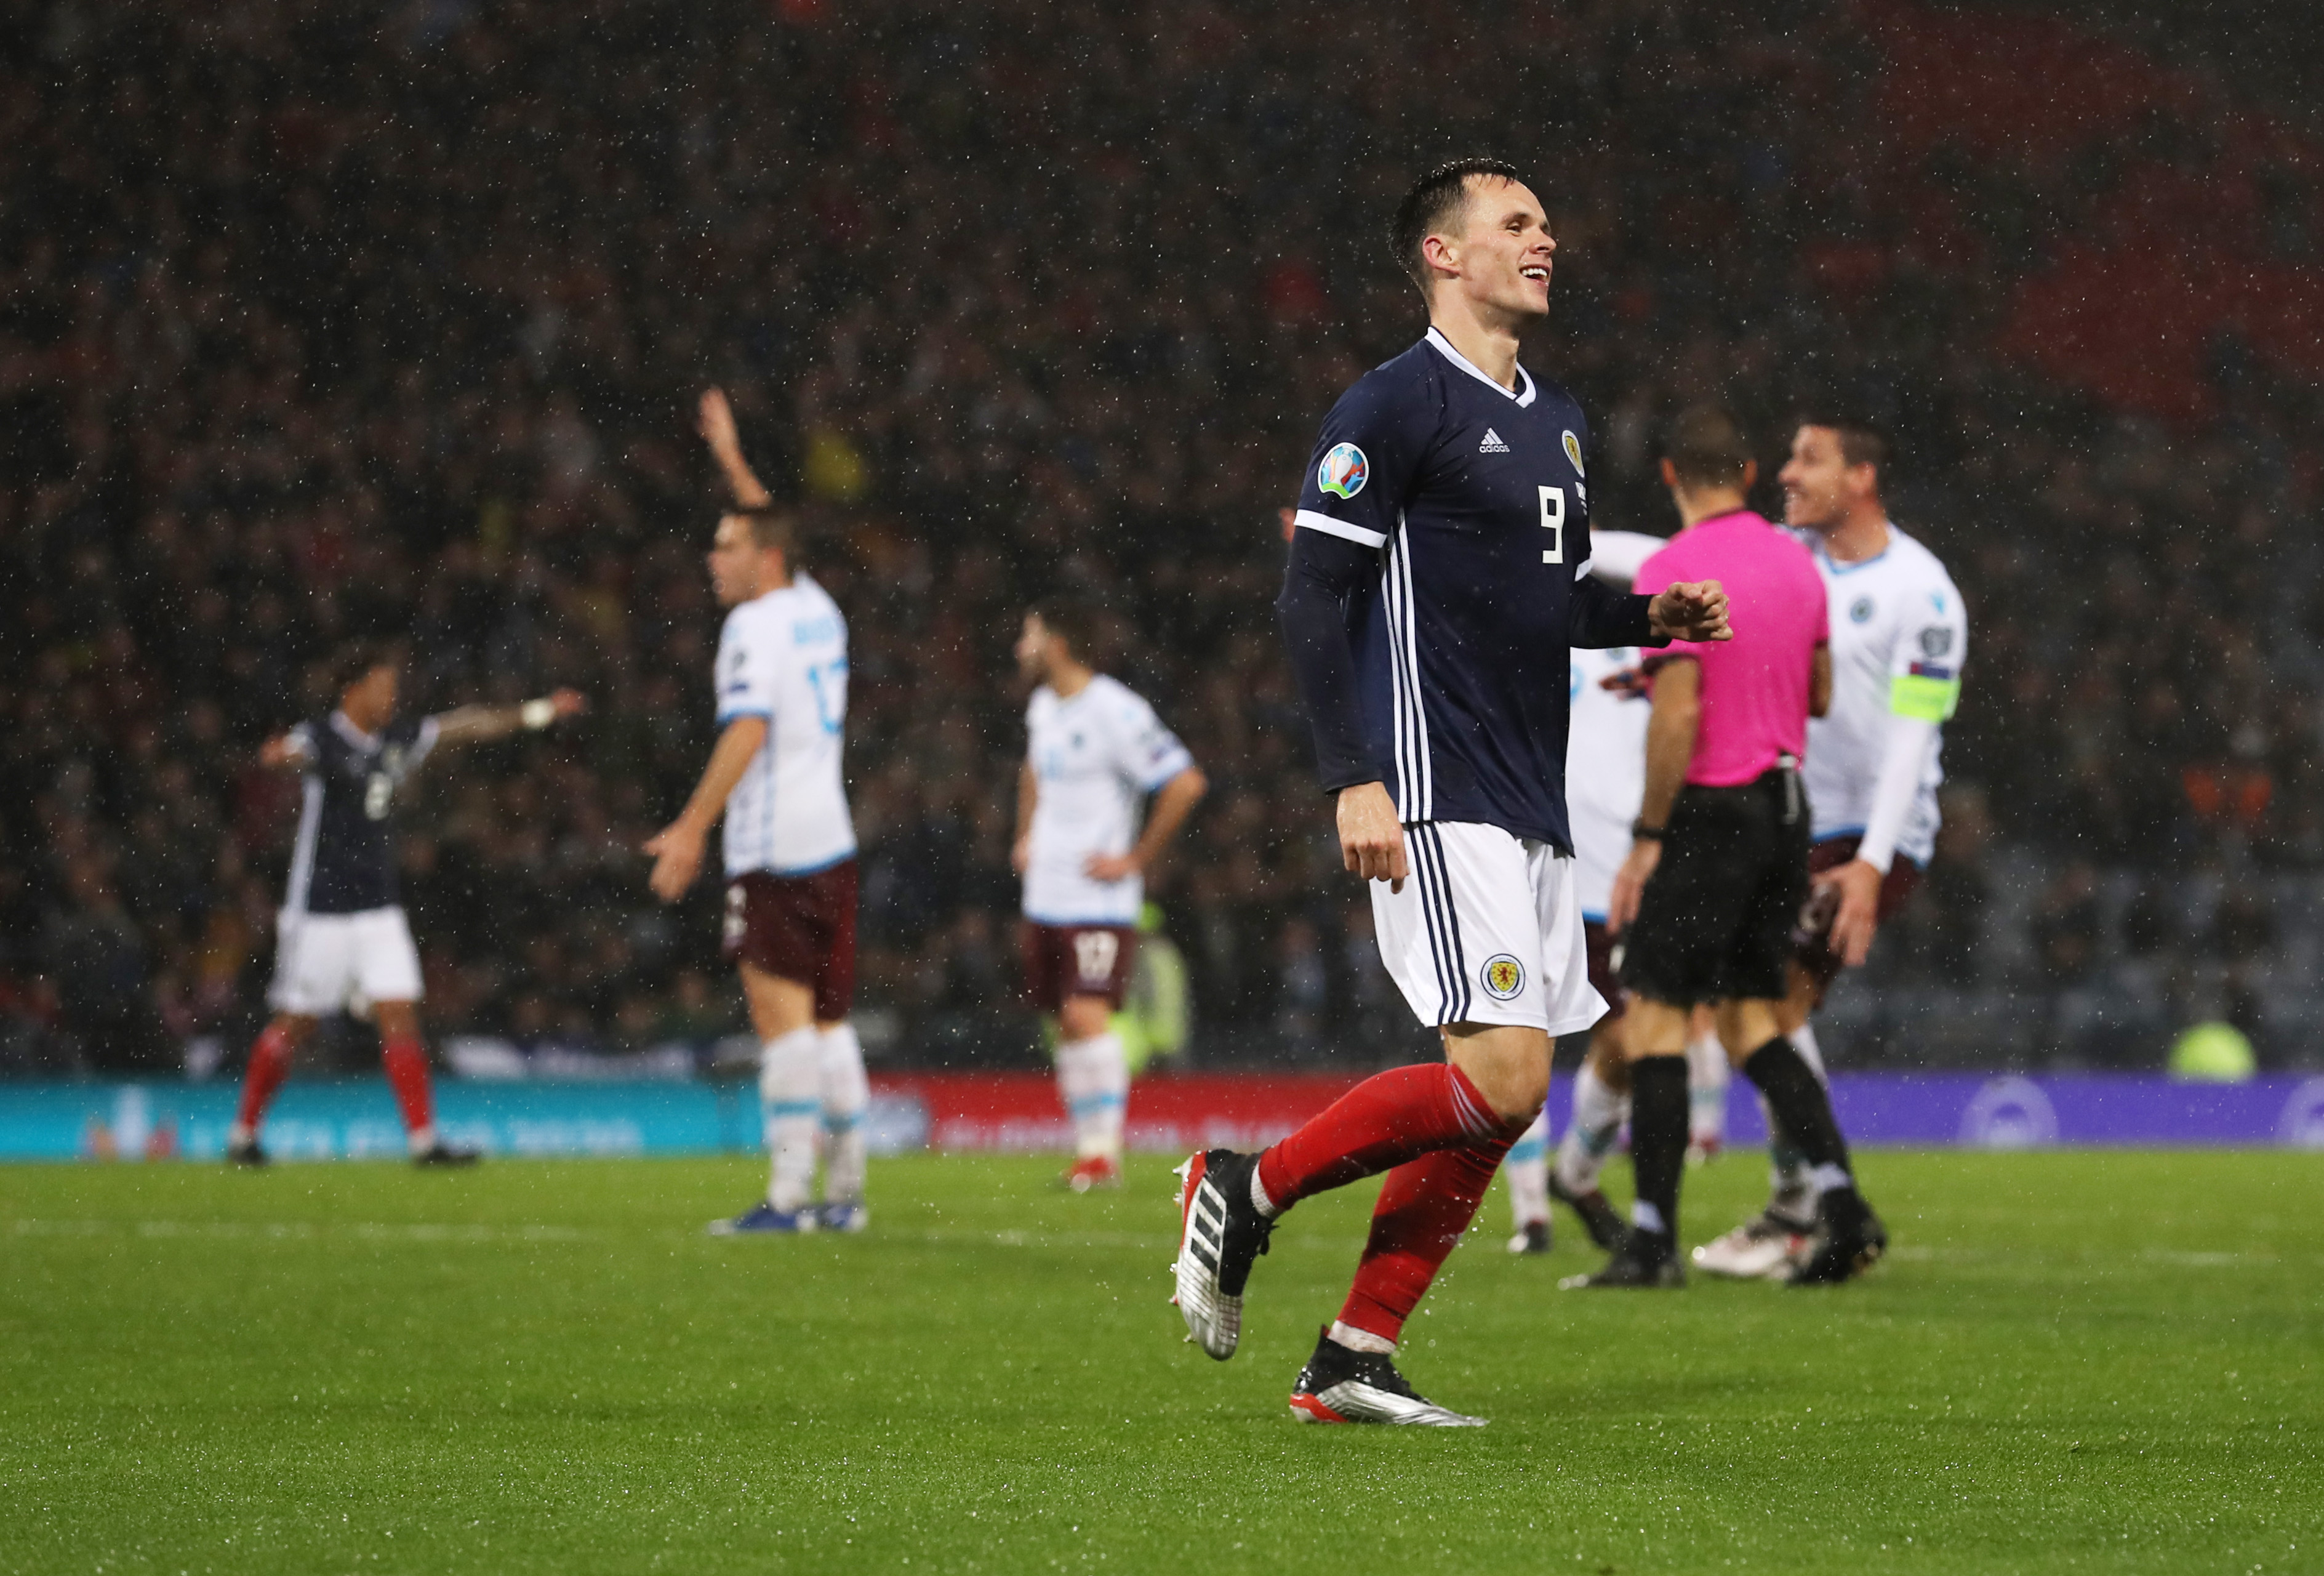 Halliday Has Urged Rangers To Sign Lawrence Shankland - Shankland looks on